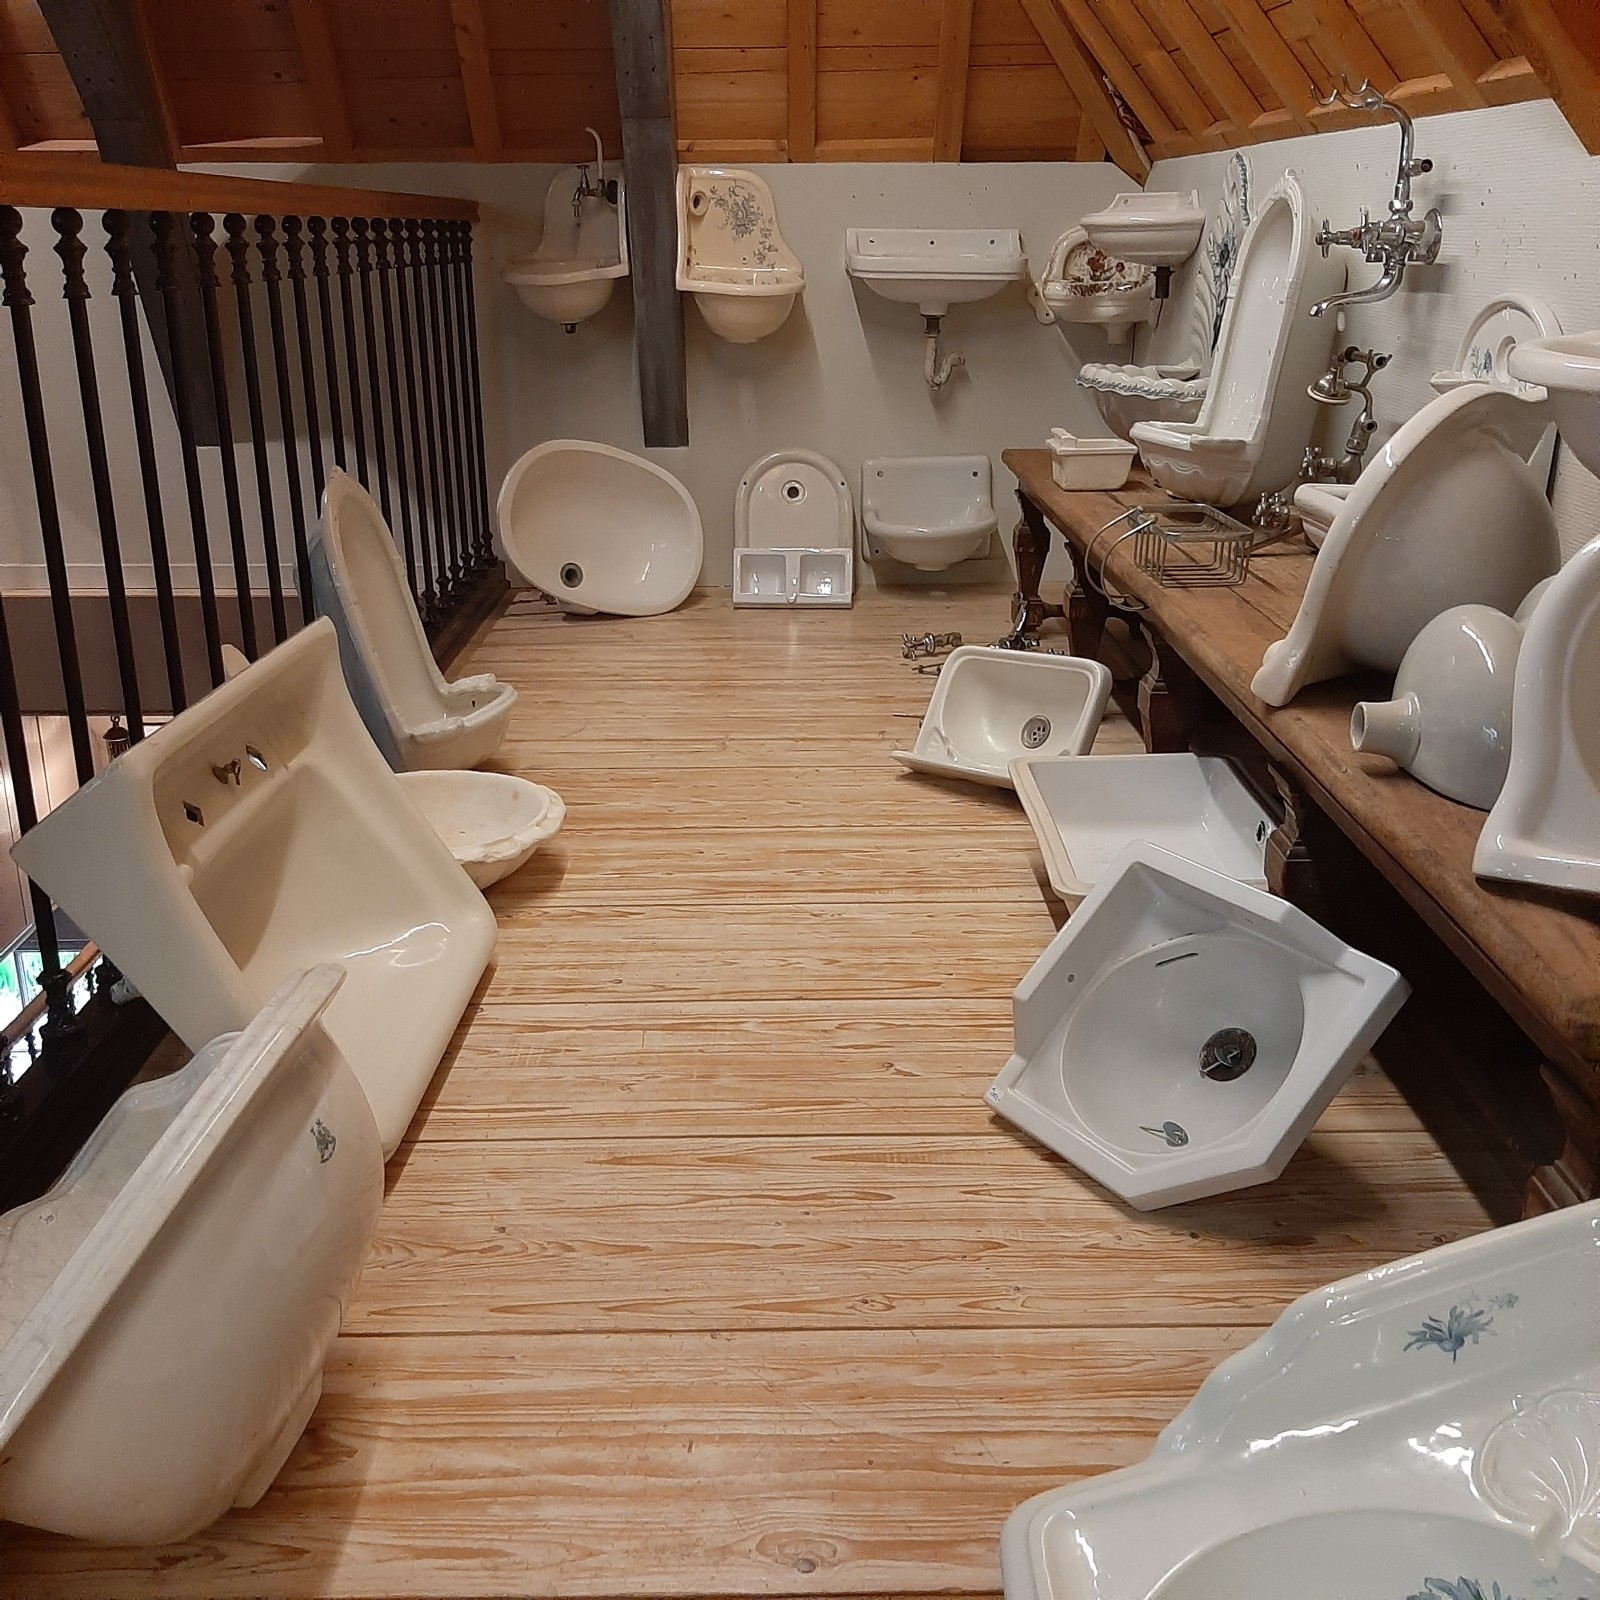 Old and antique washbasins and toilets